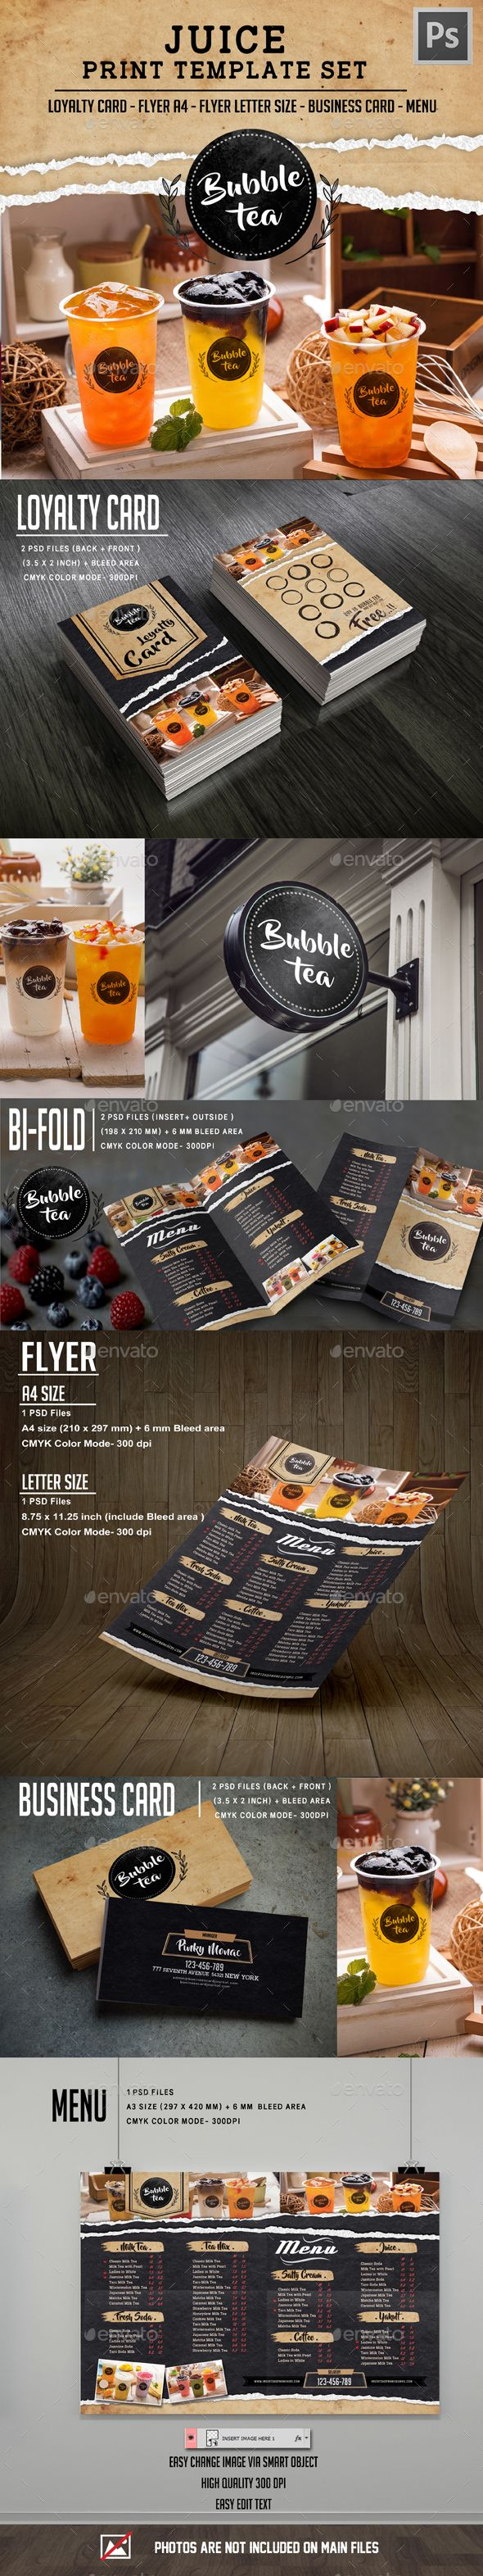 Juice Drink Menu Set  -  PSD Template • Only available here! →…